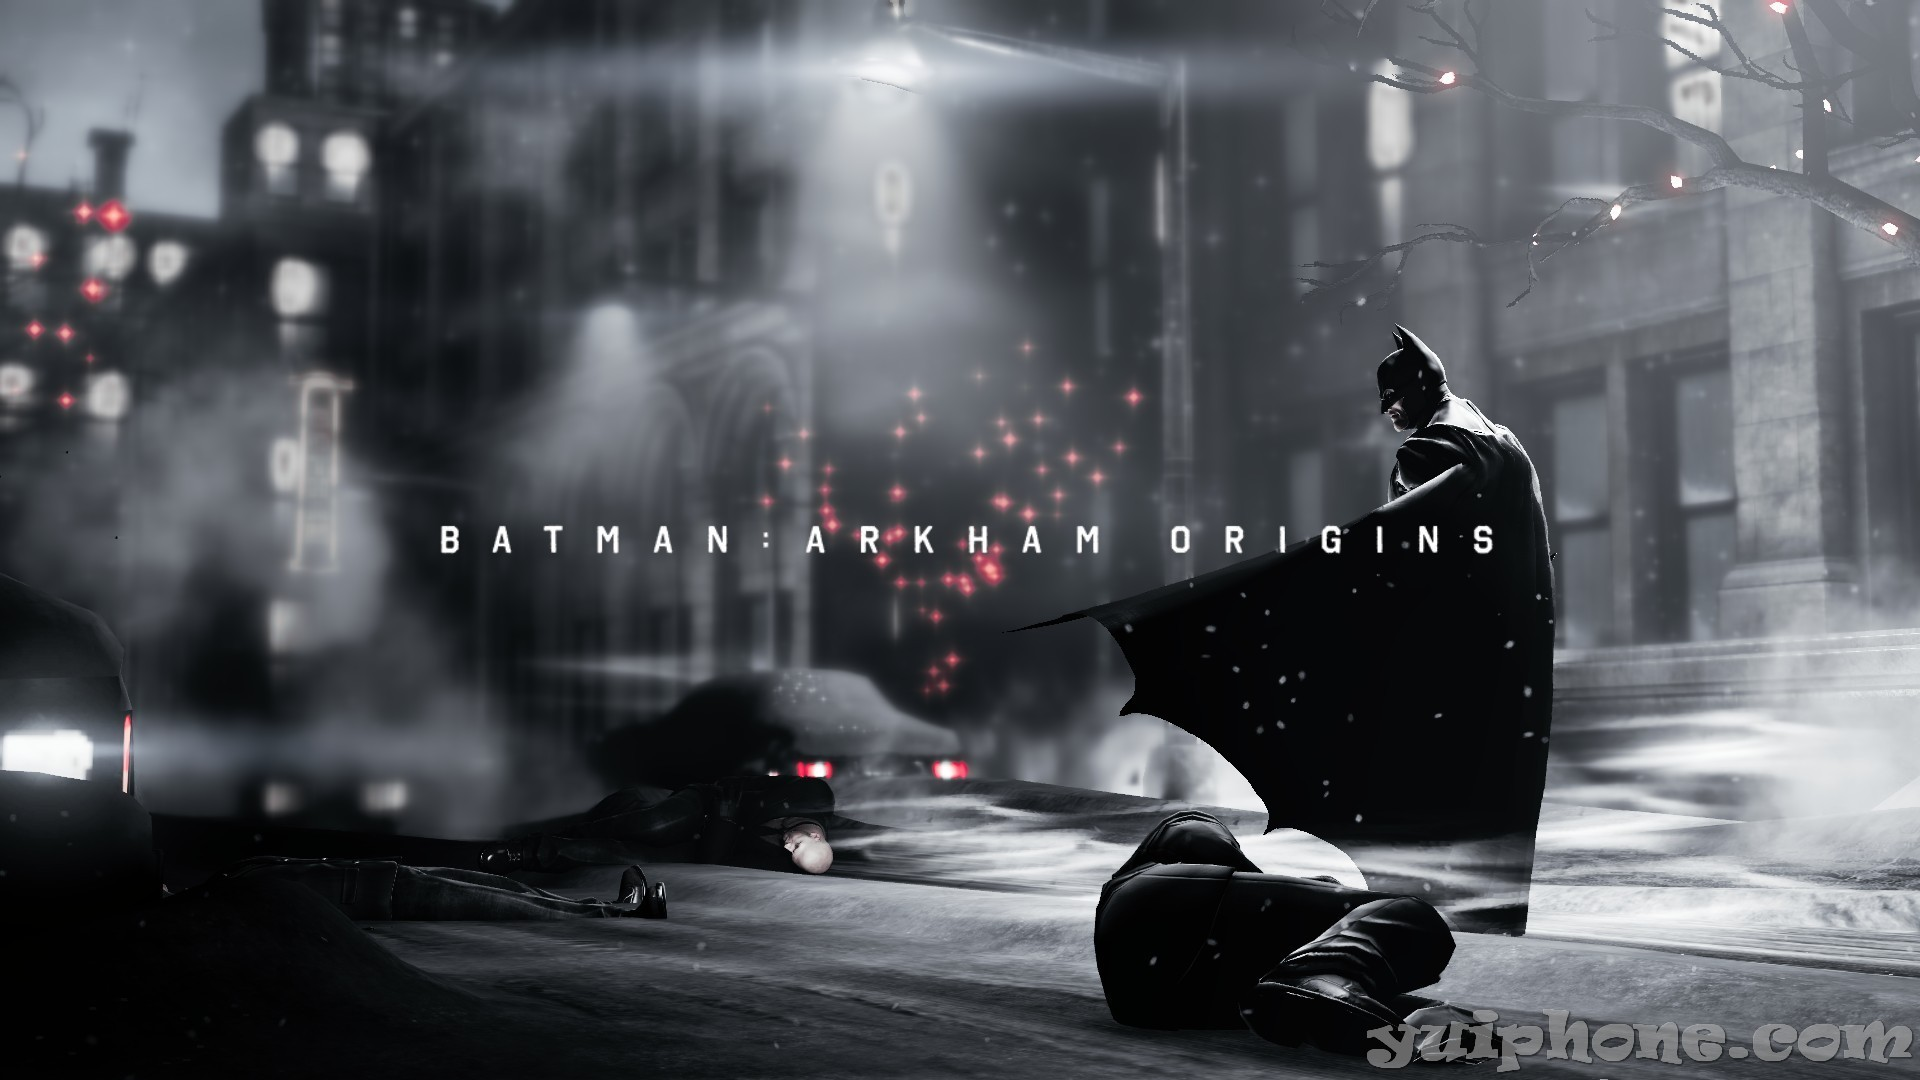 1920x1080 Batman-arkham-origins-wallpaper-13.jpg